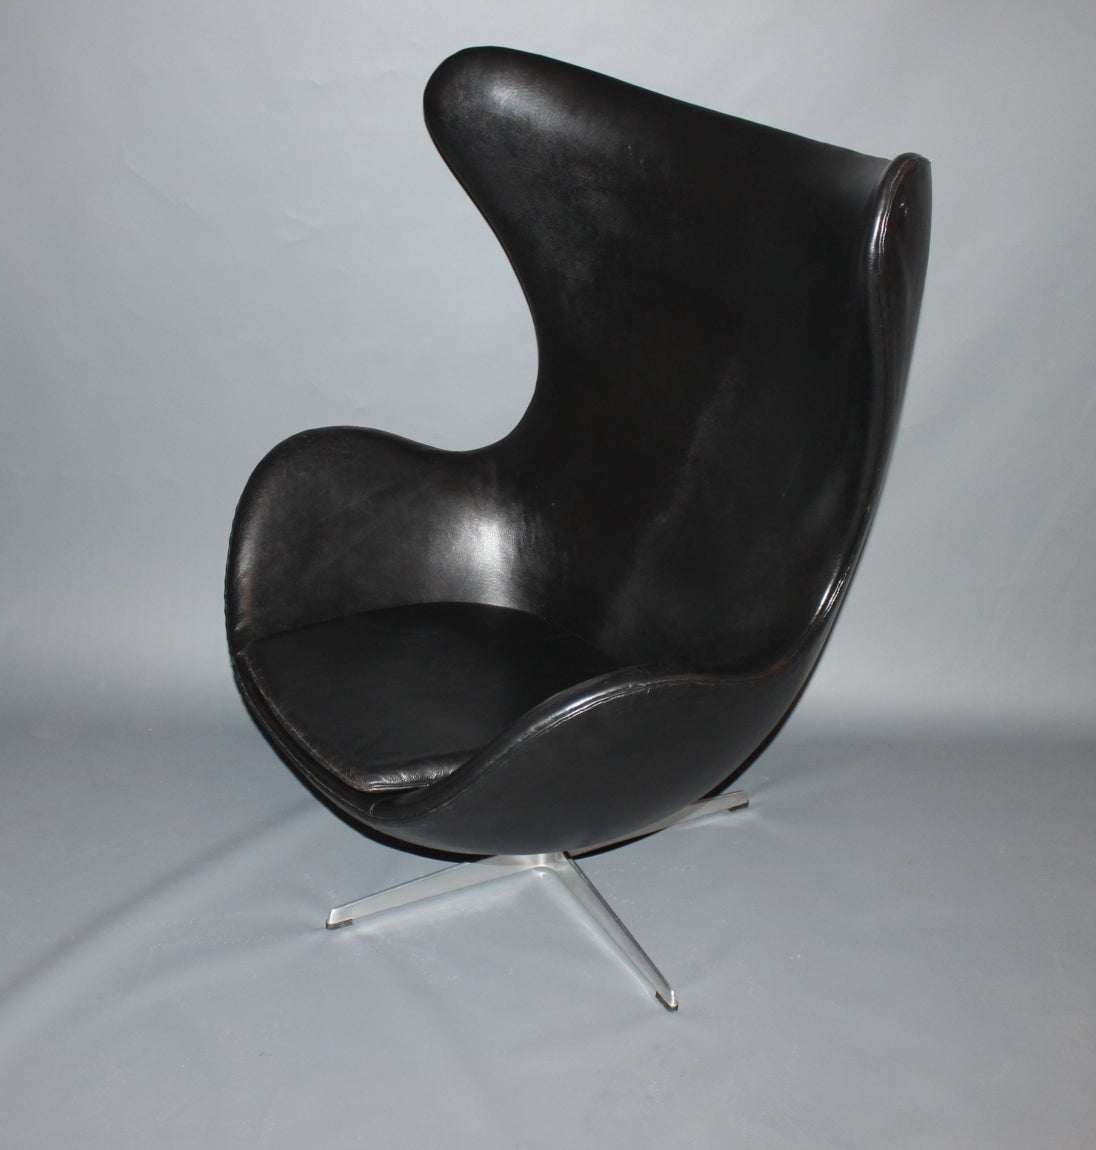 Arne jacobsen egg chair with original upholstery by fritz for Egg chair original